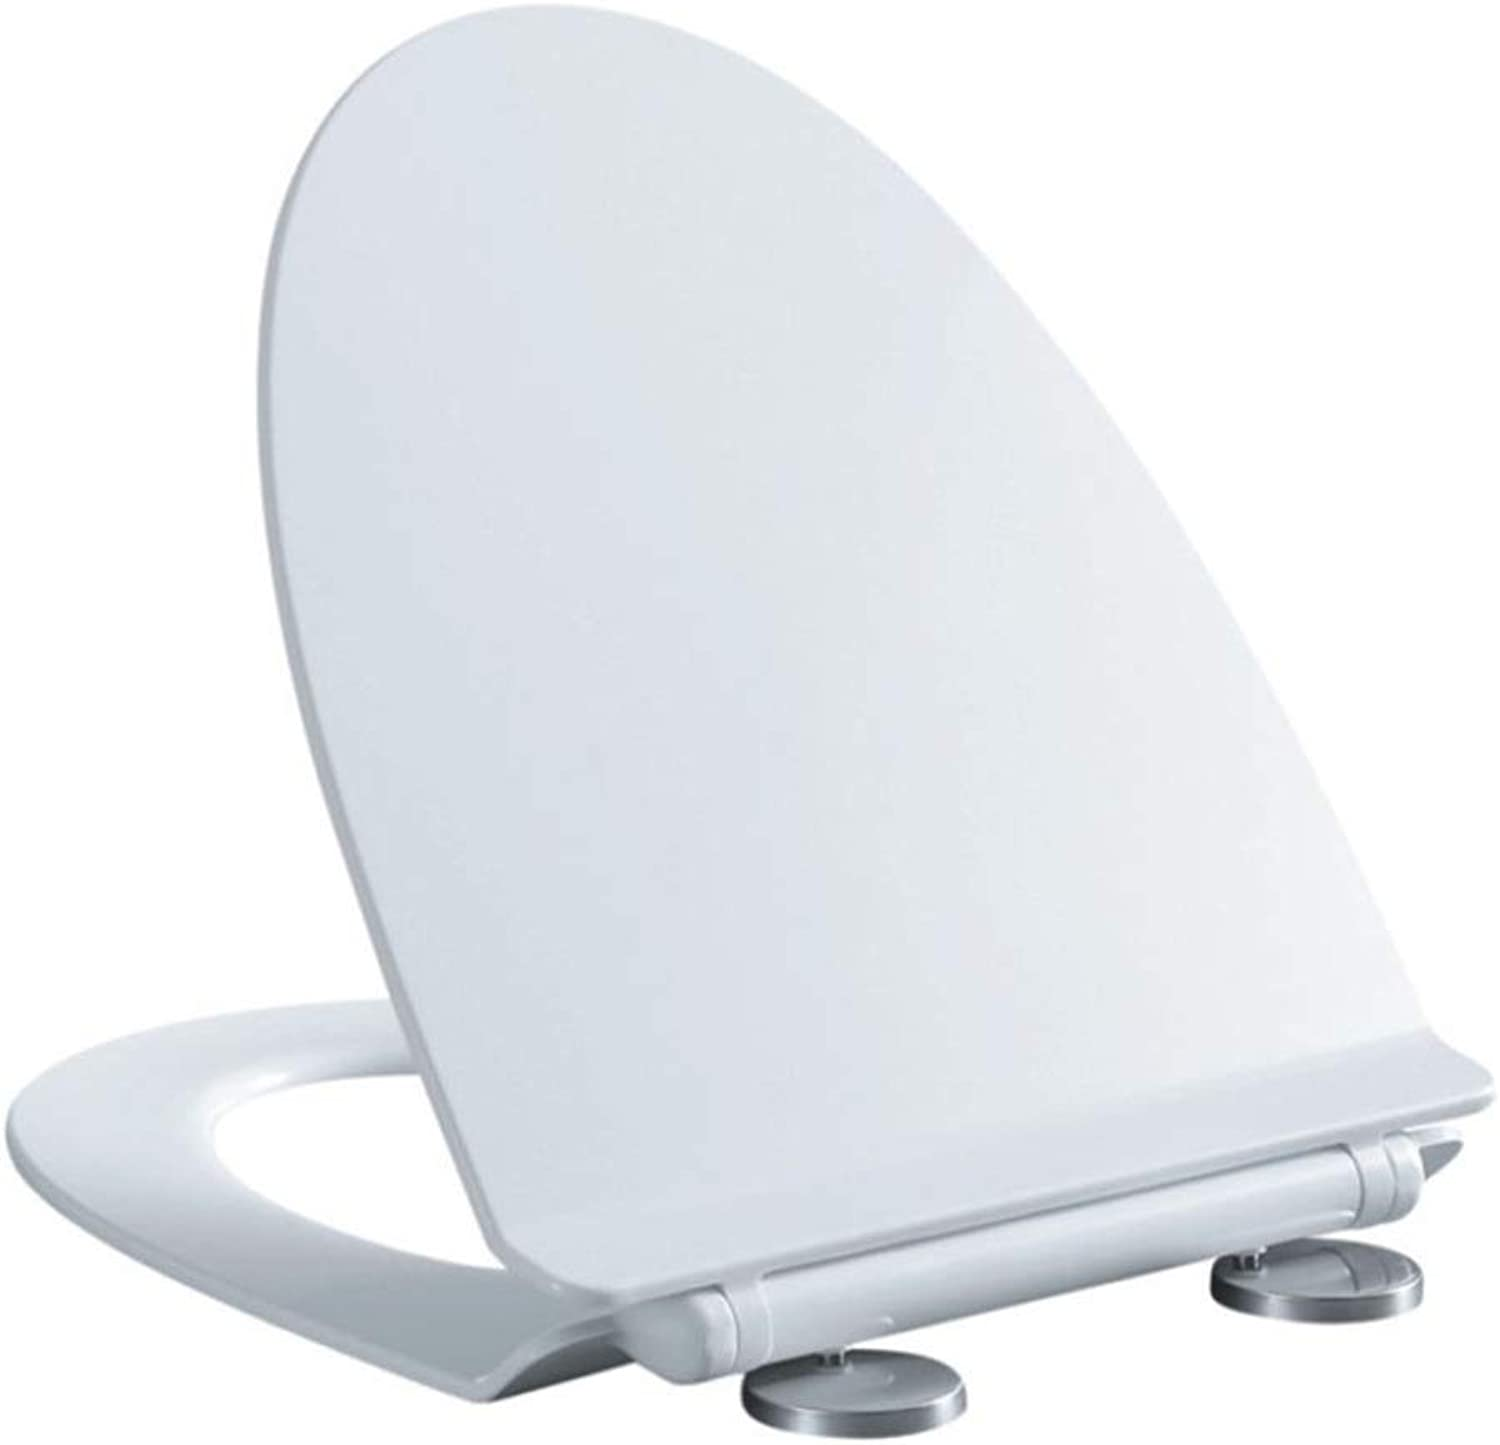 Universal Toilet Seat V Shape Drop Mute Antibacterial Easy To Install Top Mounted Toilet Lid For Adult